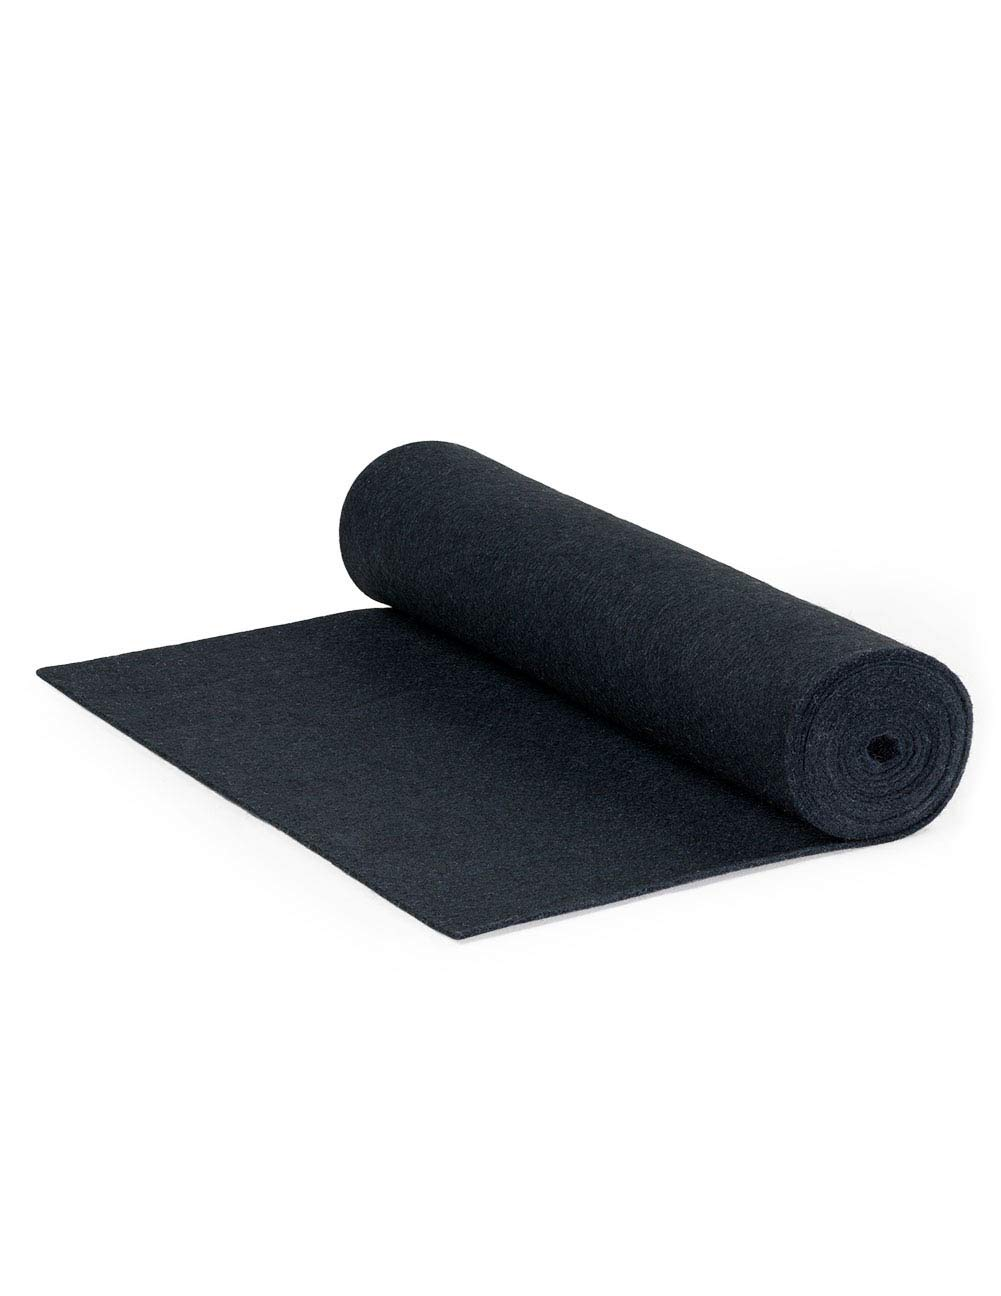 48 Inch Long x 3 Inch Wide x 3 Inch High x 1//16 Inch Thick Cargo Protector